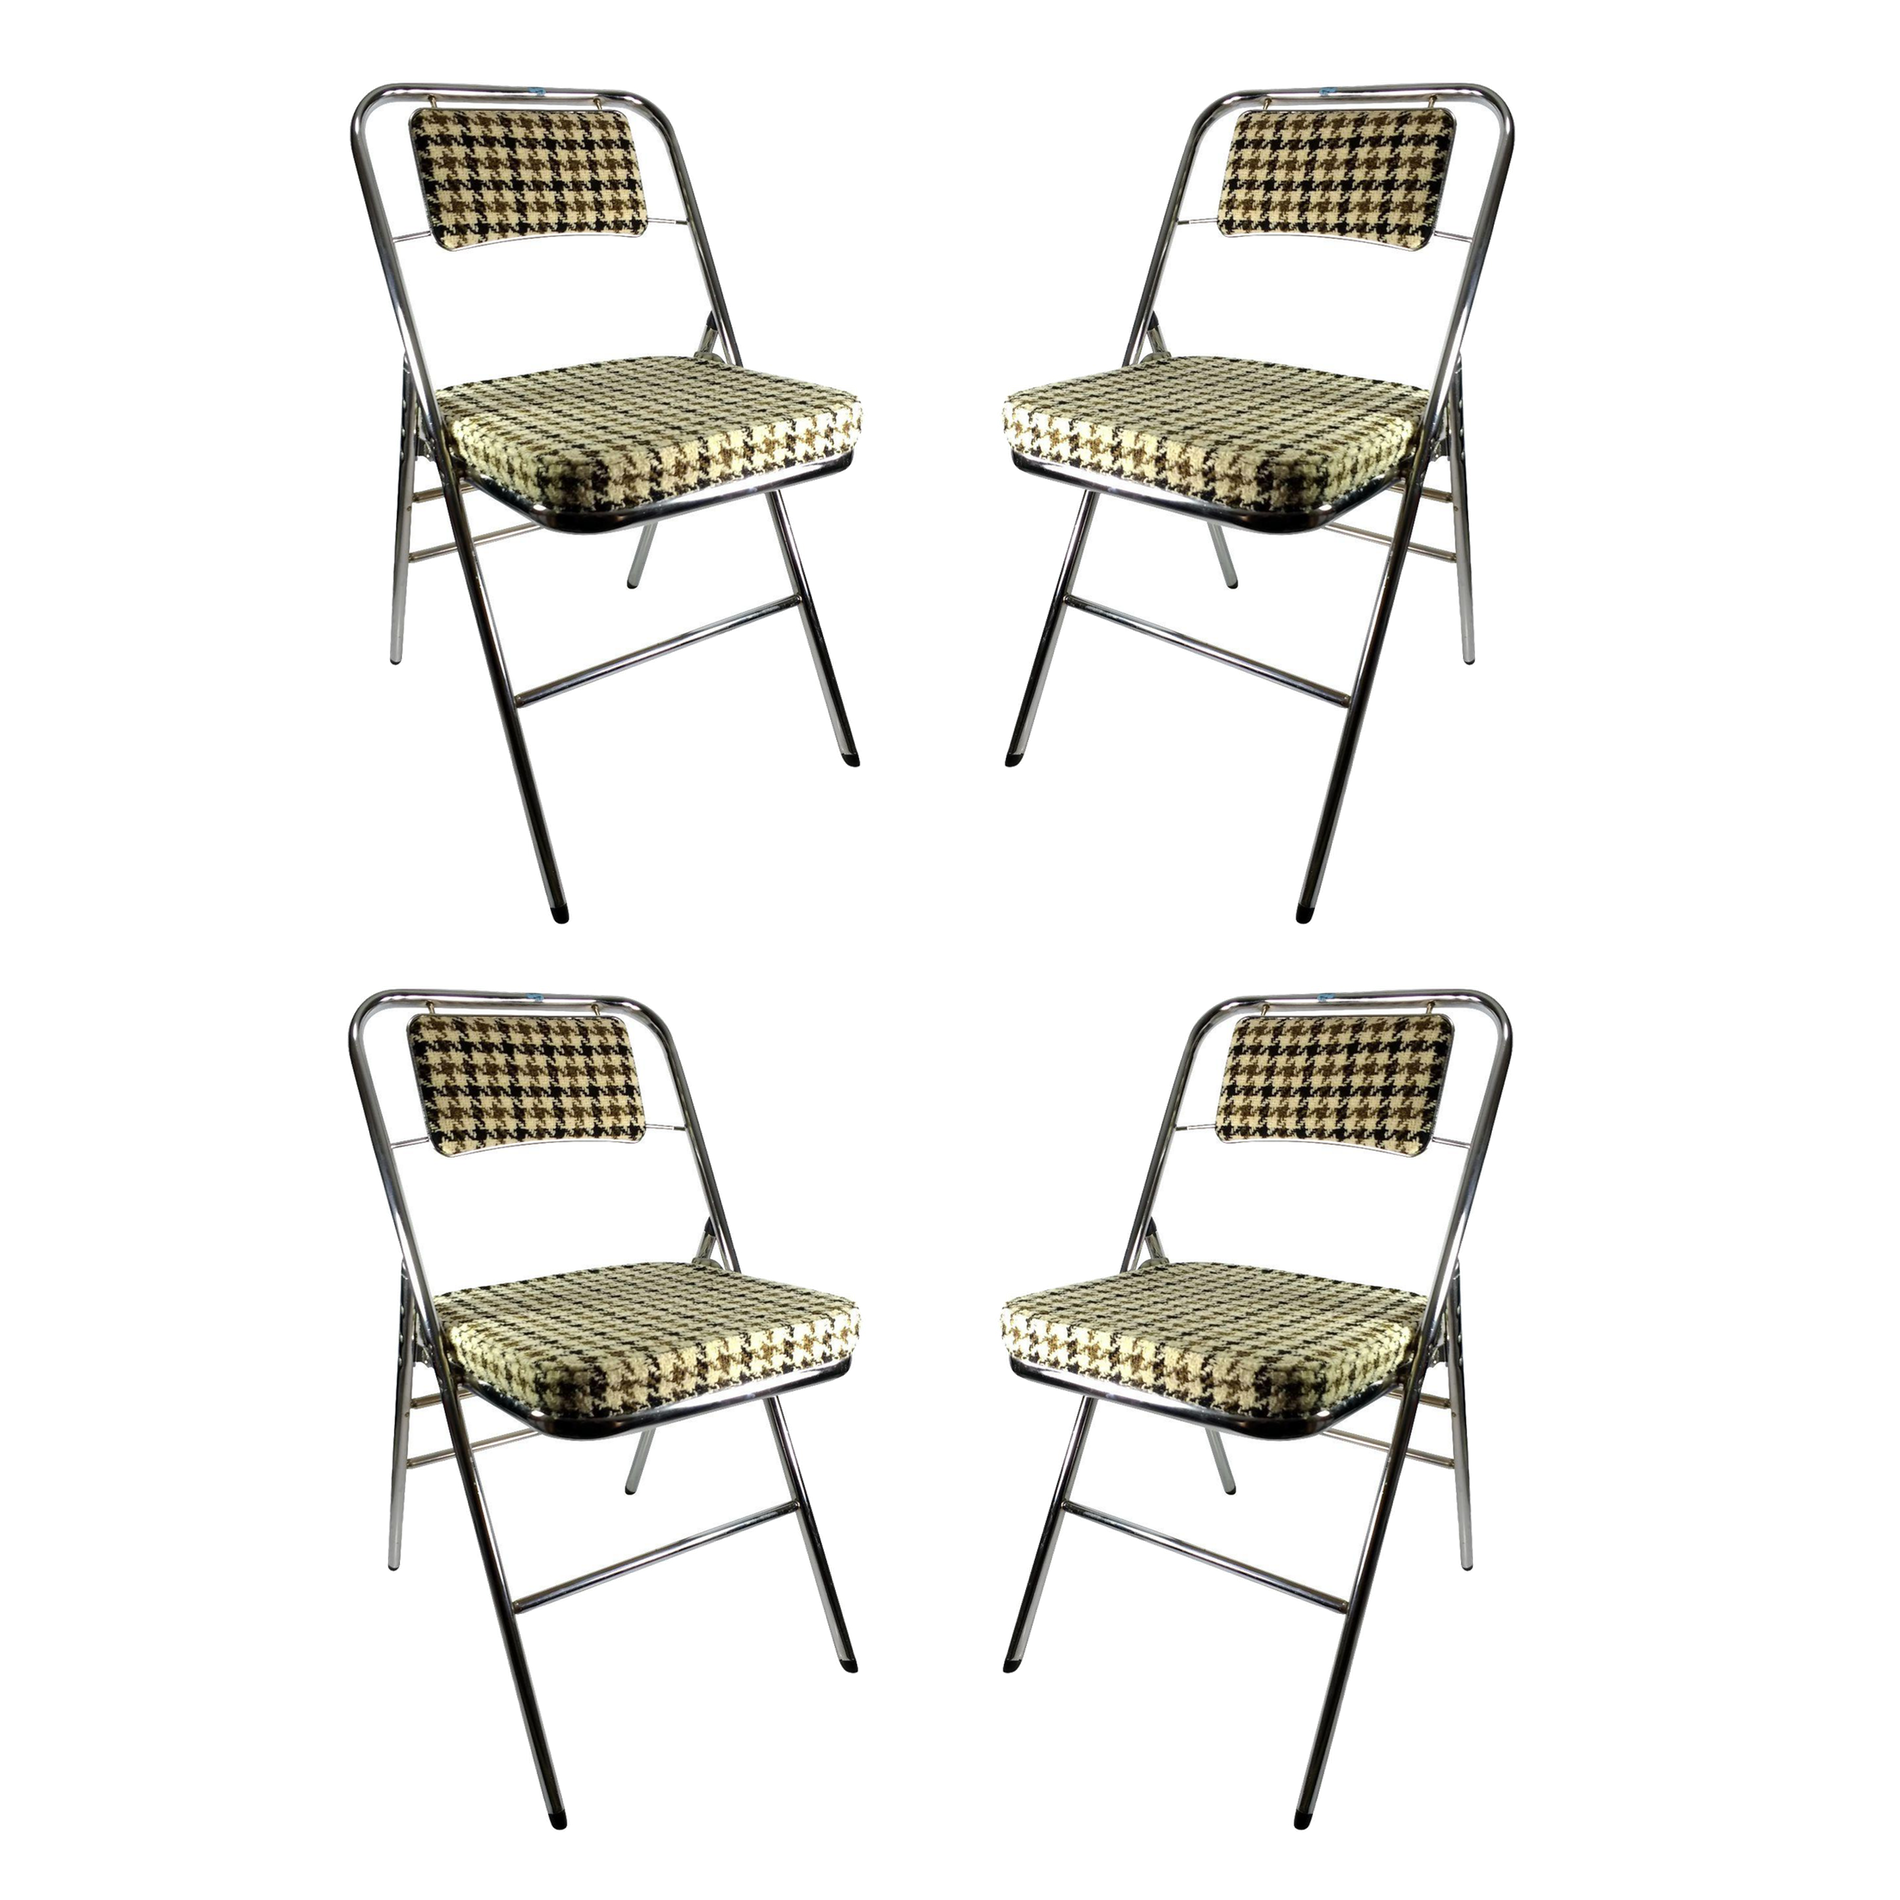 Samsonite Houndstooth Folding Chairs Set of 4